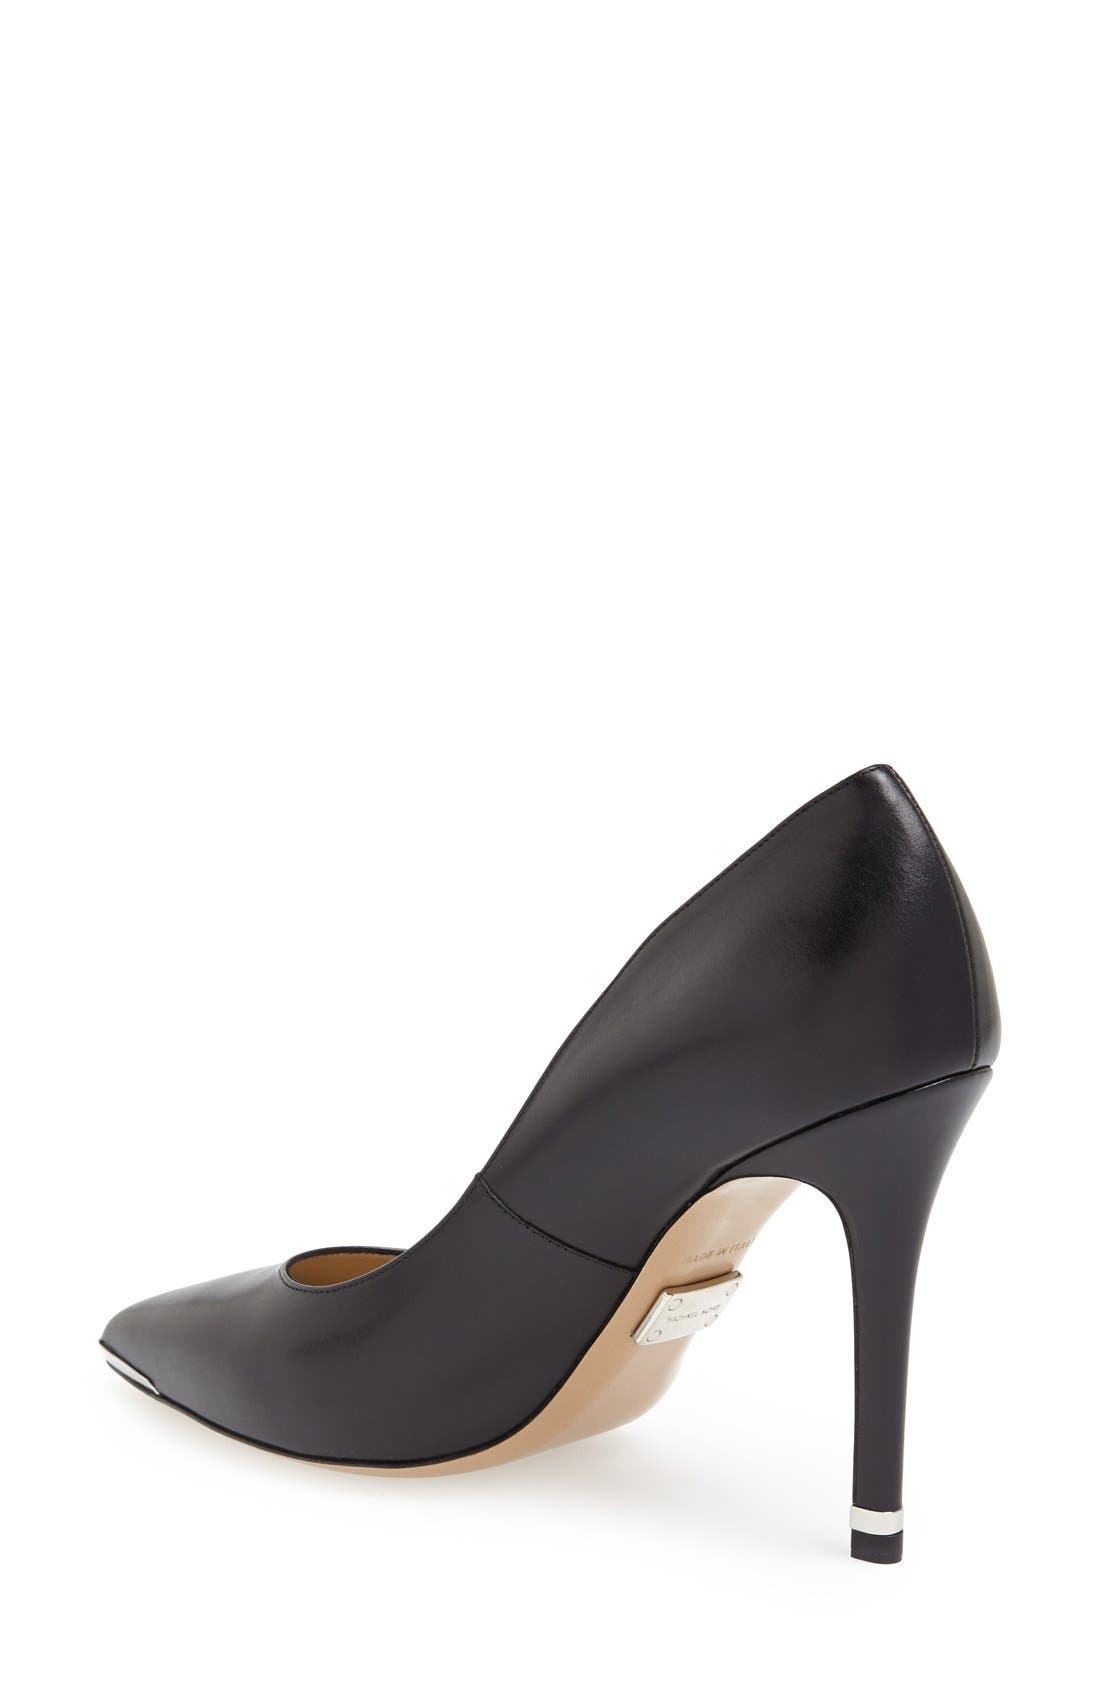 Alternate Image 2  - Michael Kors 'Avra' Pointy Toe Pump (Women)